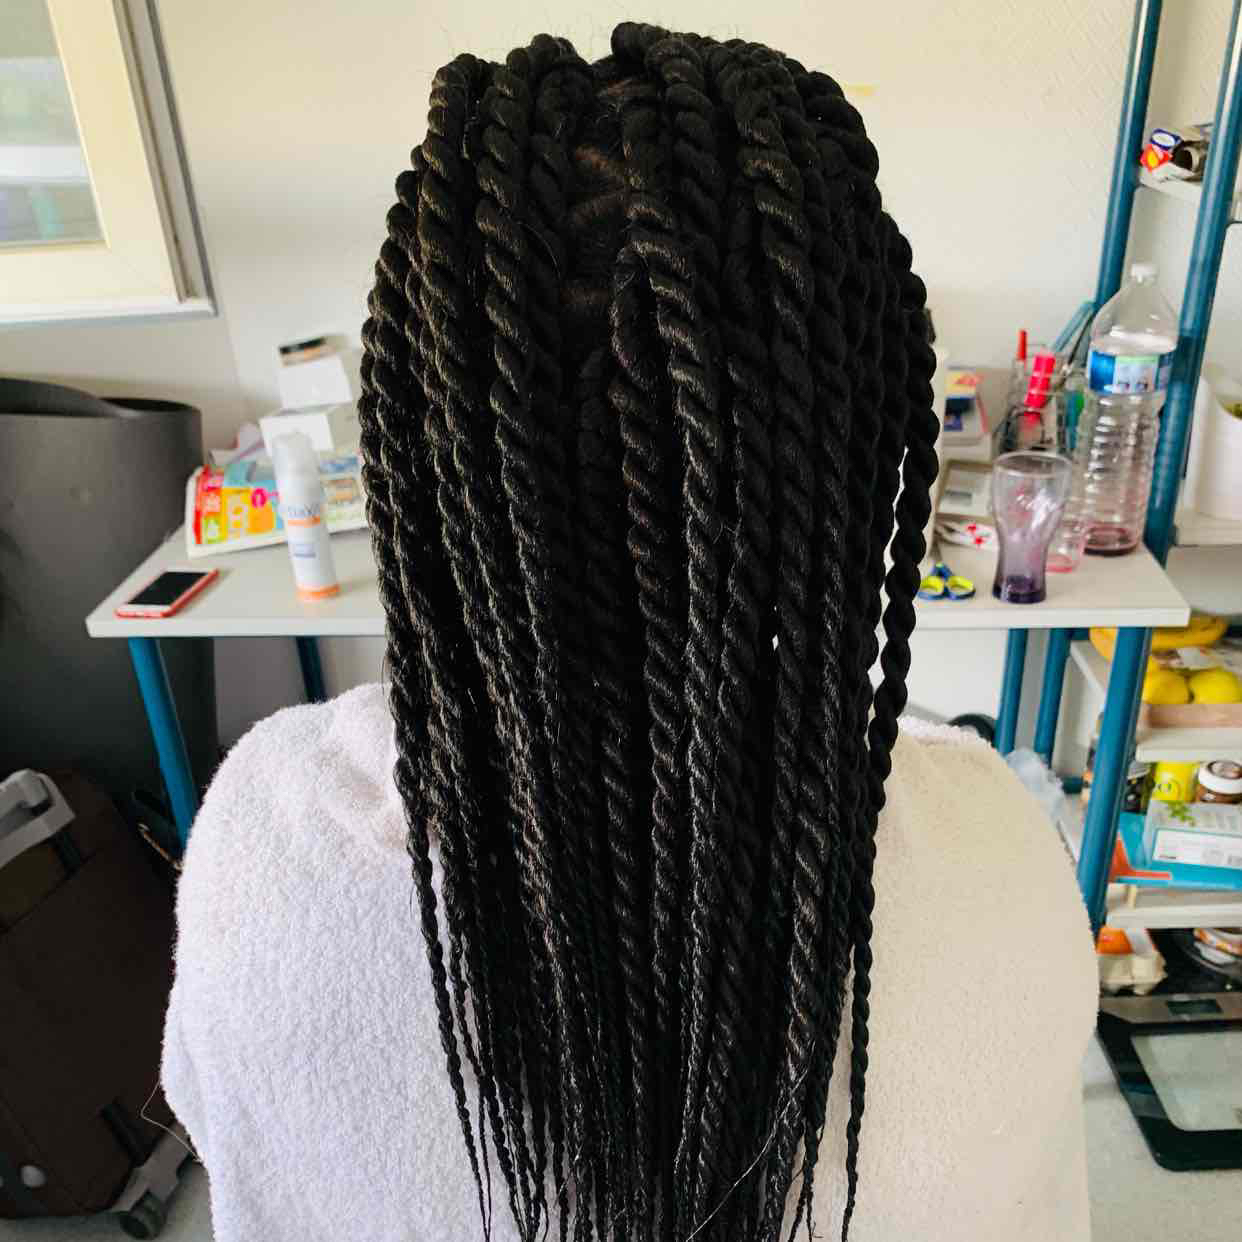 salon de coiffure afro tresse tresses box braids crochet braids vanilles tissages paris 75 77 78 91 92 93 94 95 RLYUZMJZ